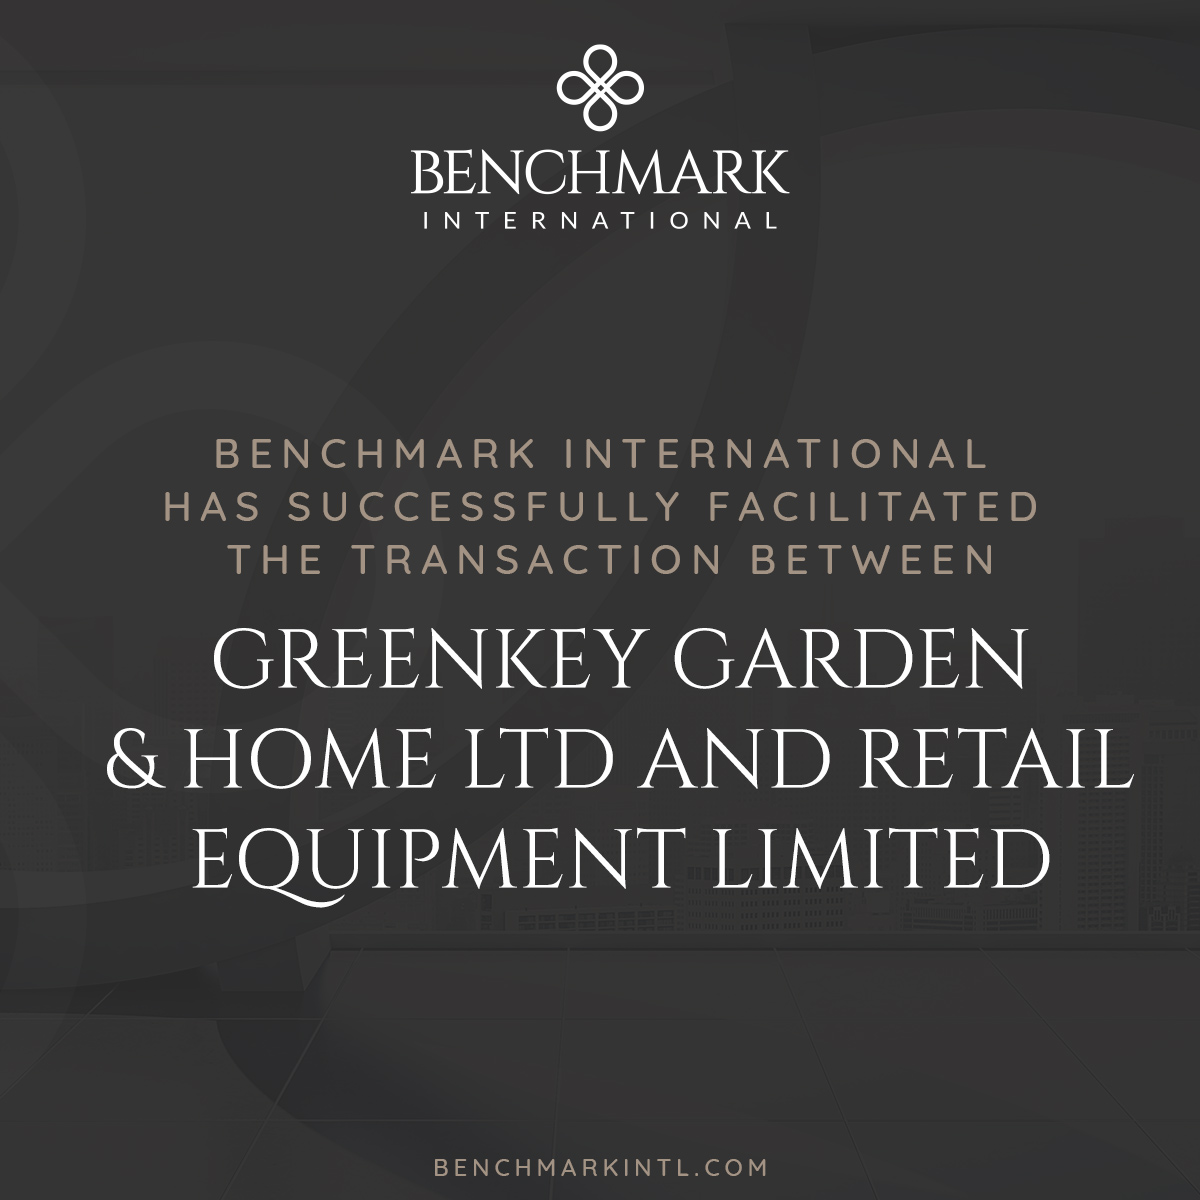 Retail Equipment acquires Greenkey Garden & Home